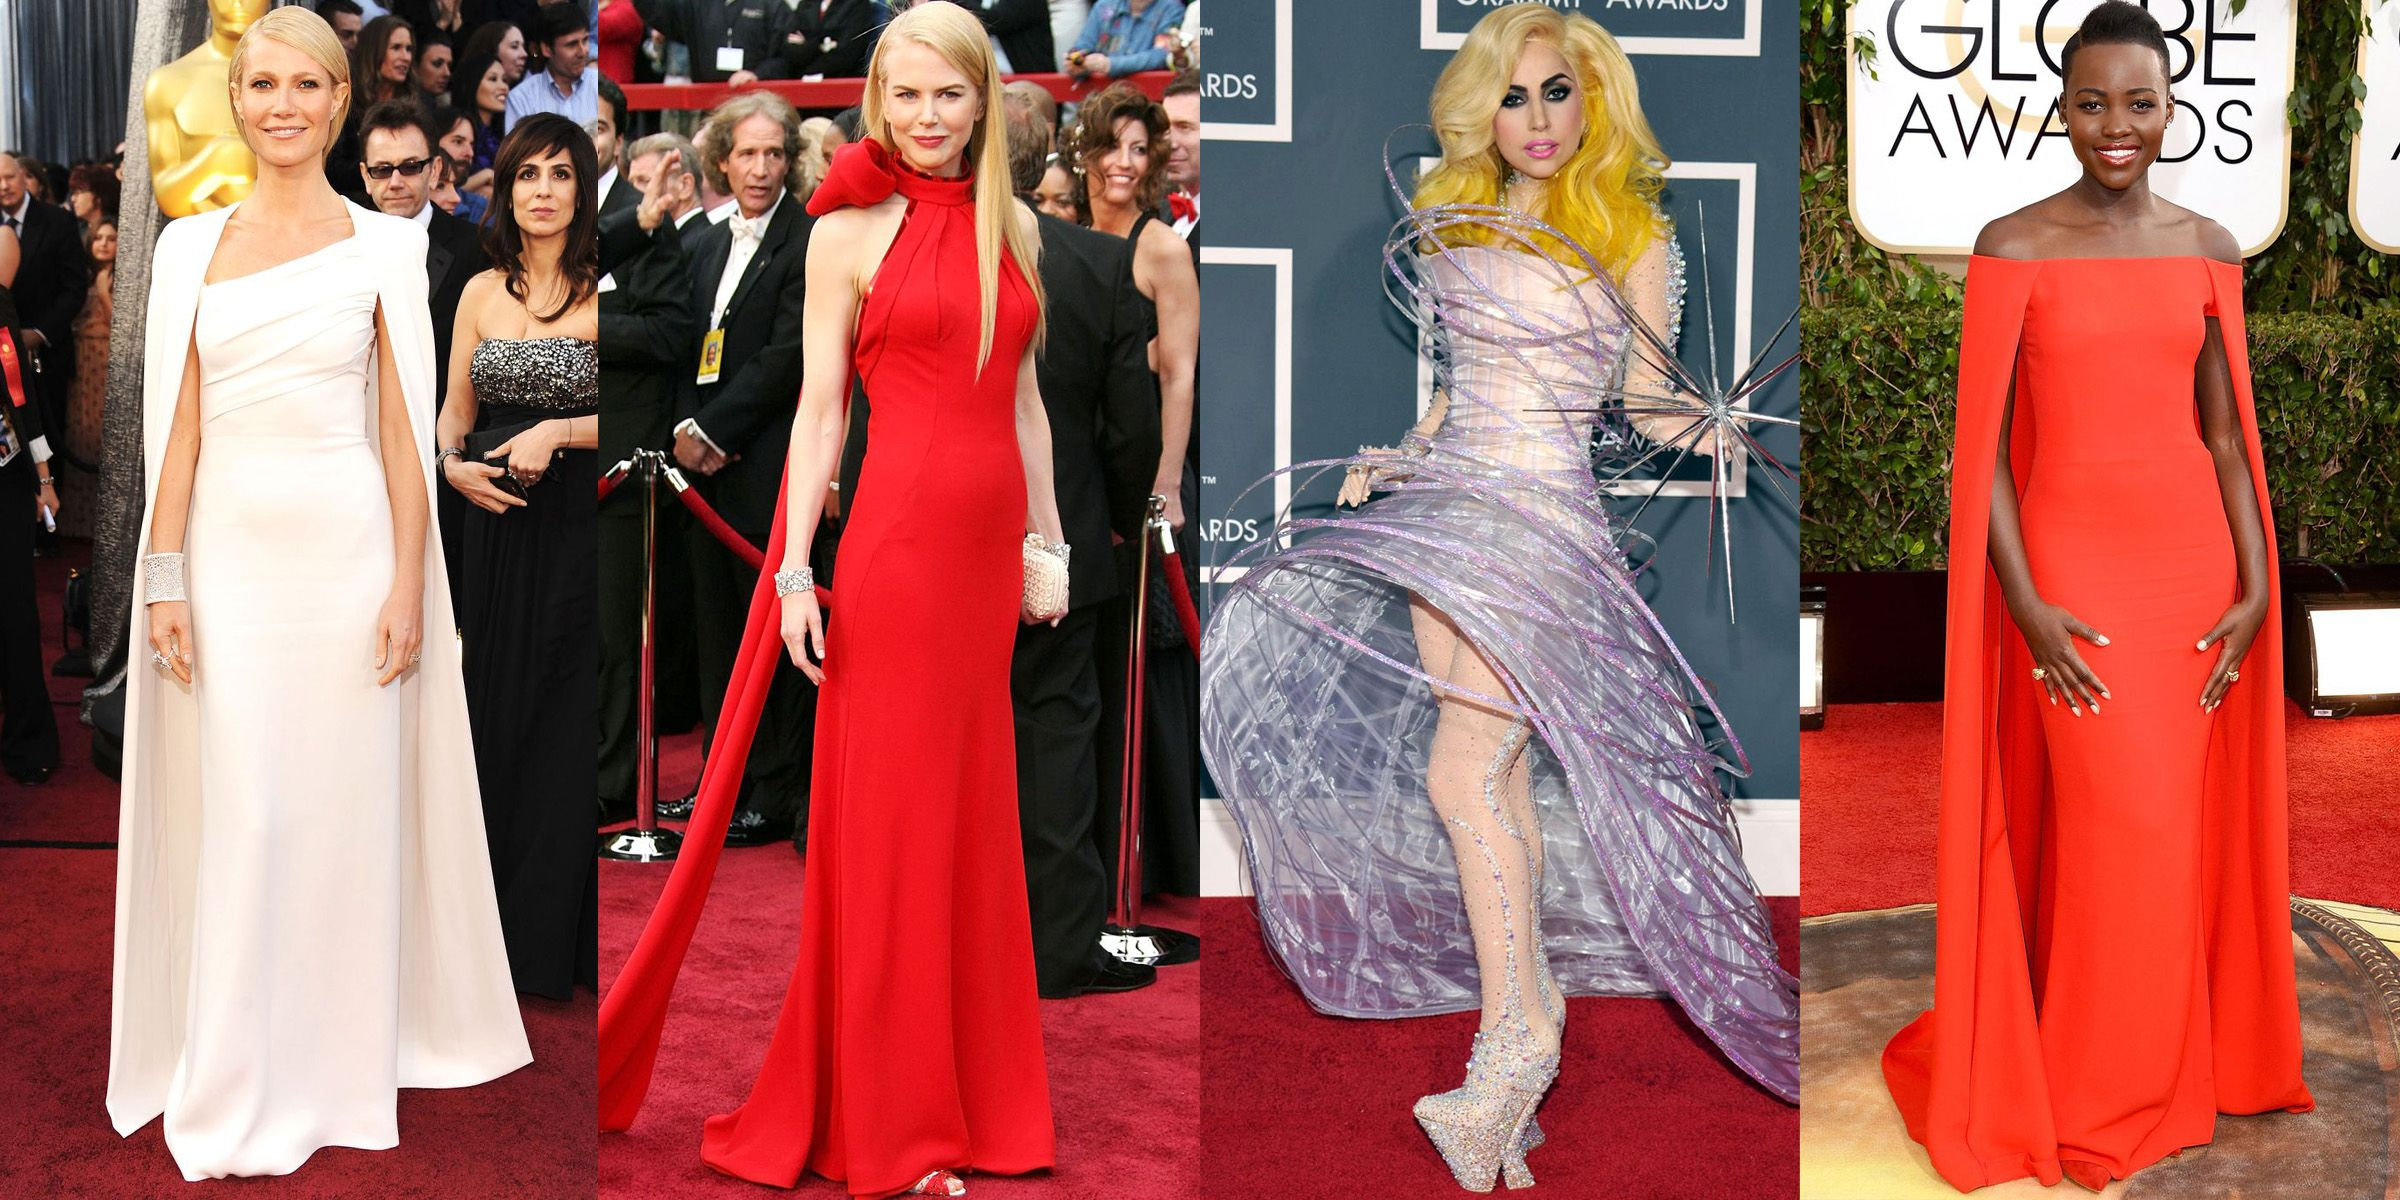 100 Best Red Carpet Dresses of All Time   Most Iconic Red Carpet Looks image